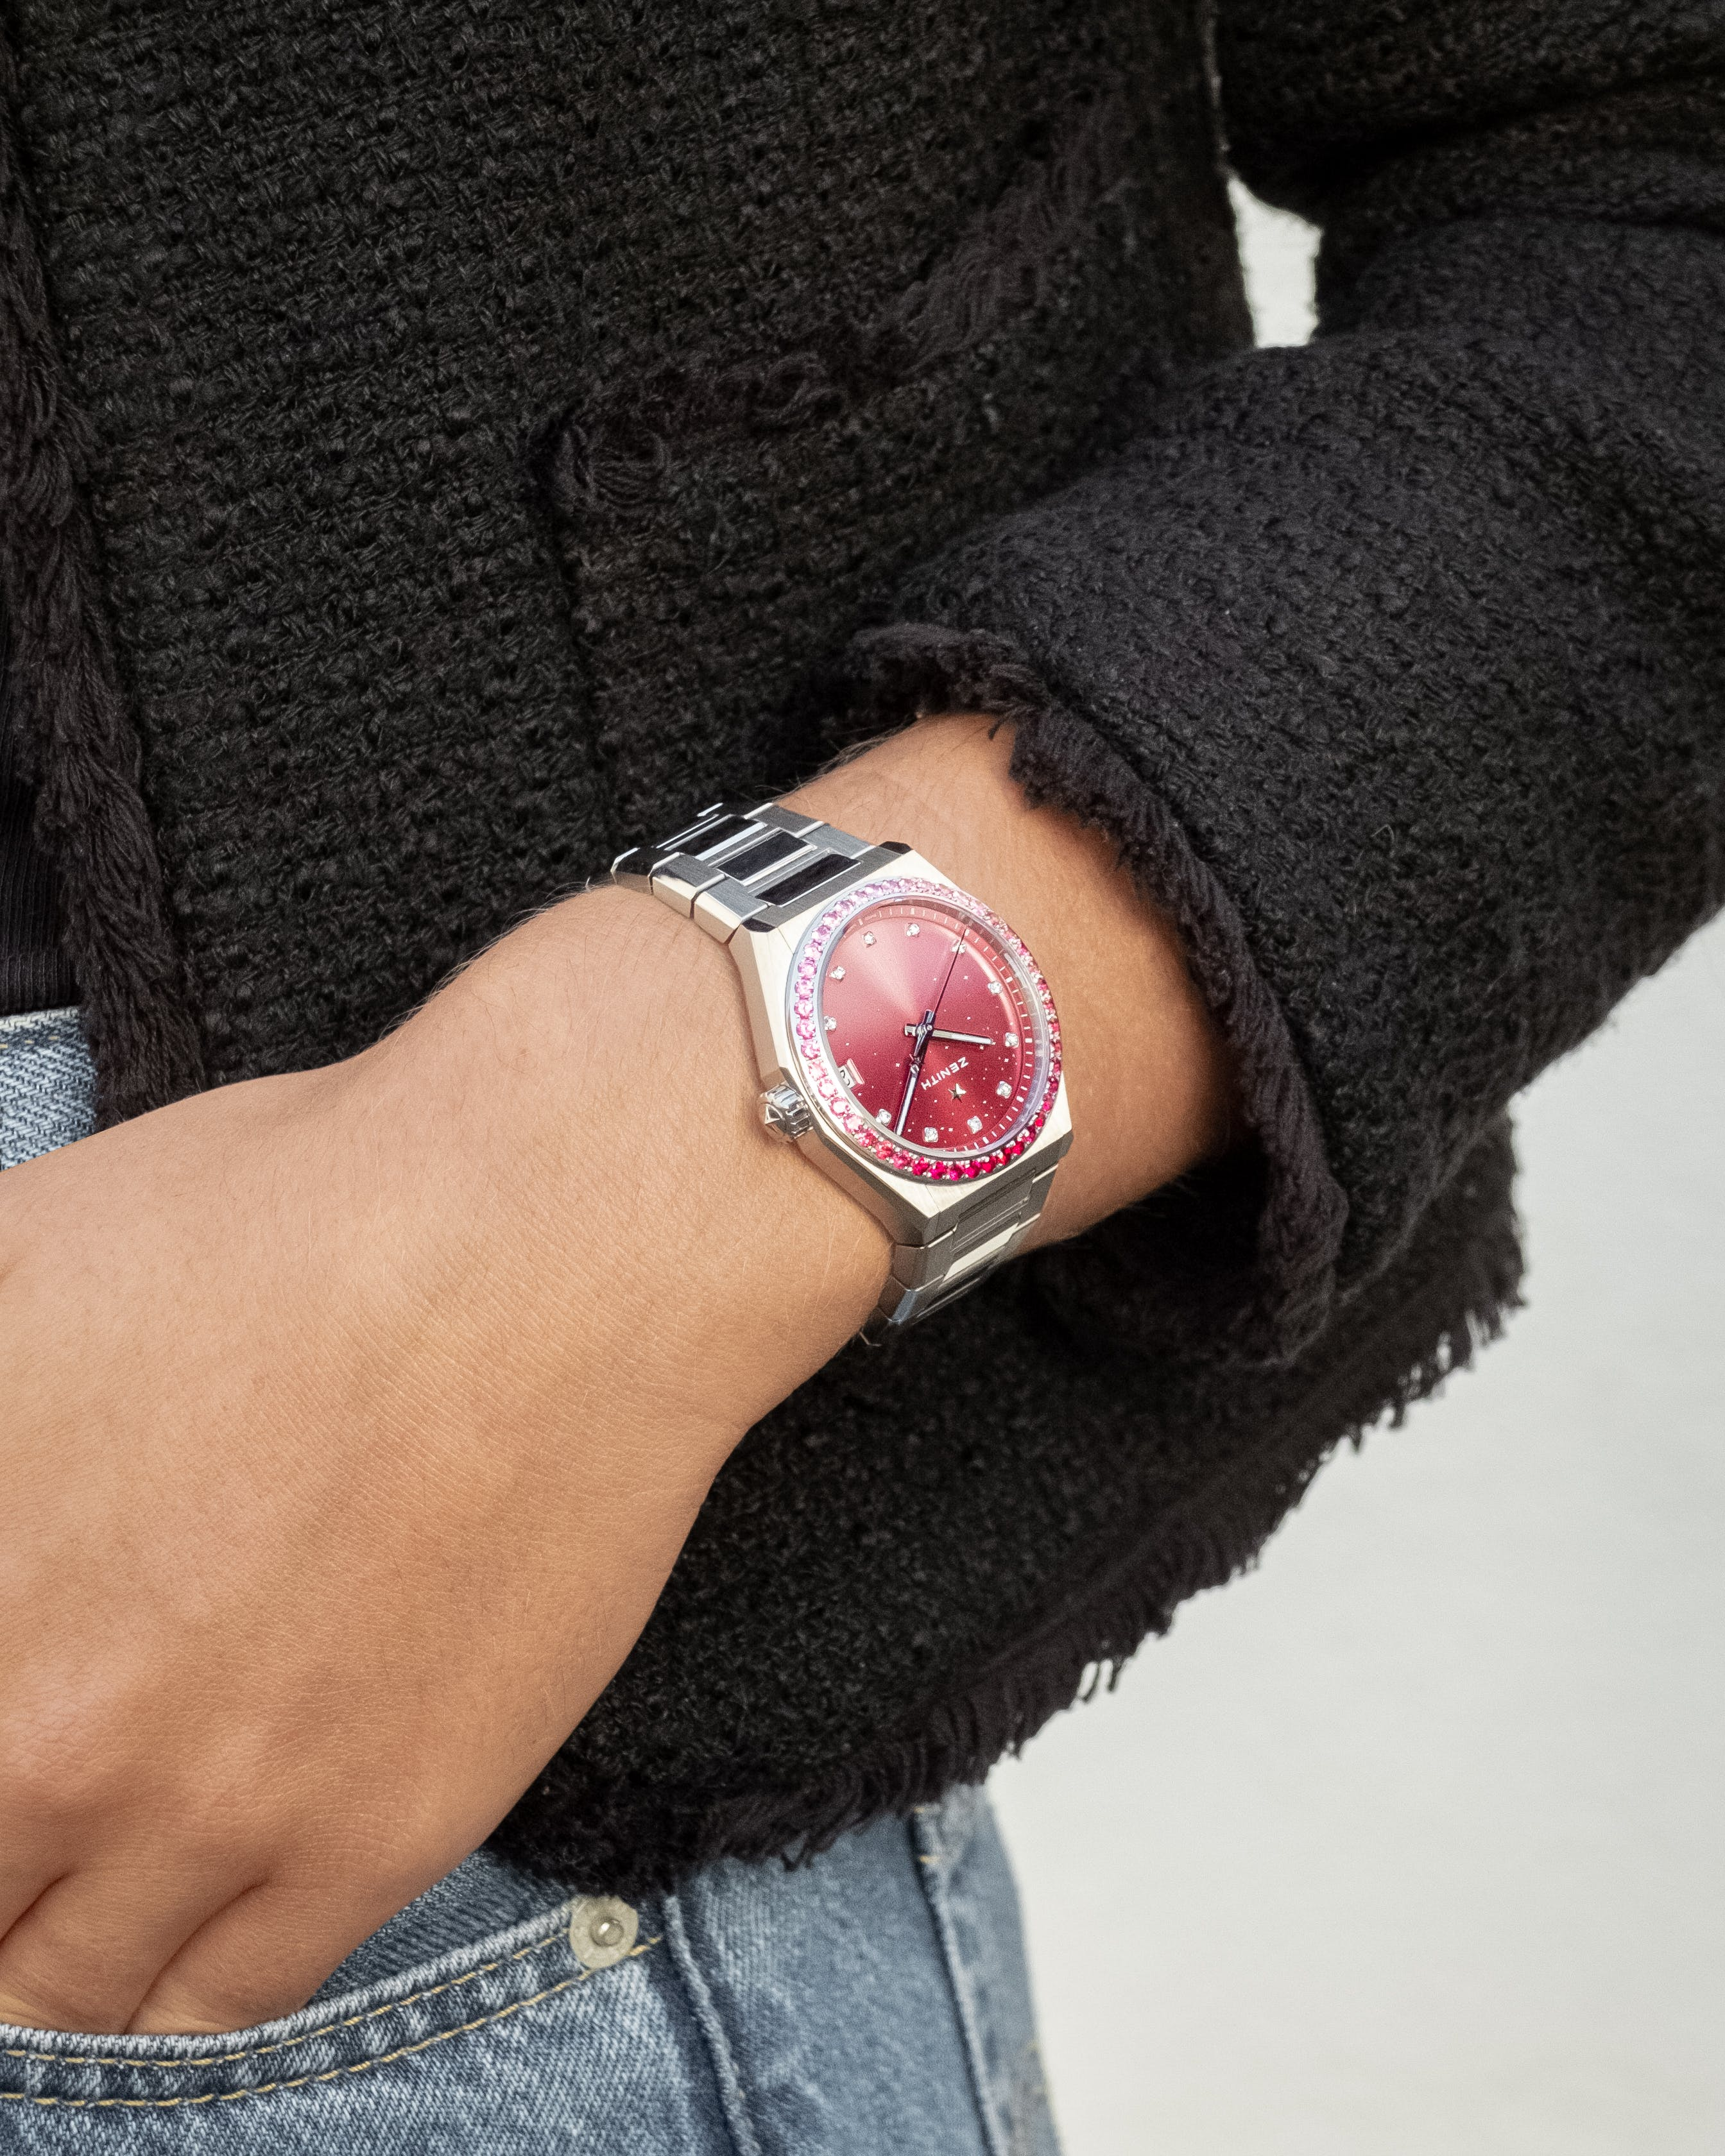 ZENITH CONTINUES TO SUPPORT THE GLOBAL MOVEMENT OF BREAST CANCER AWARENESS BY CREATING A UNIQUE DEFY MIDNIGHT FOR PINK RIBBON SWITZERLAND'S ANNUAL CHARITY AUCTION